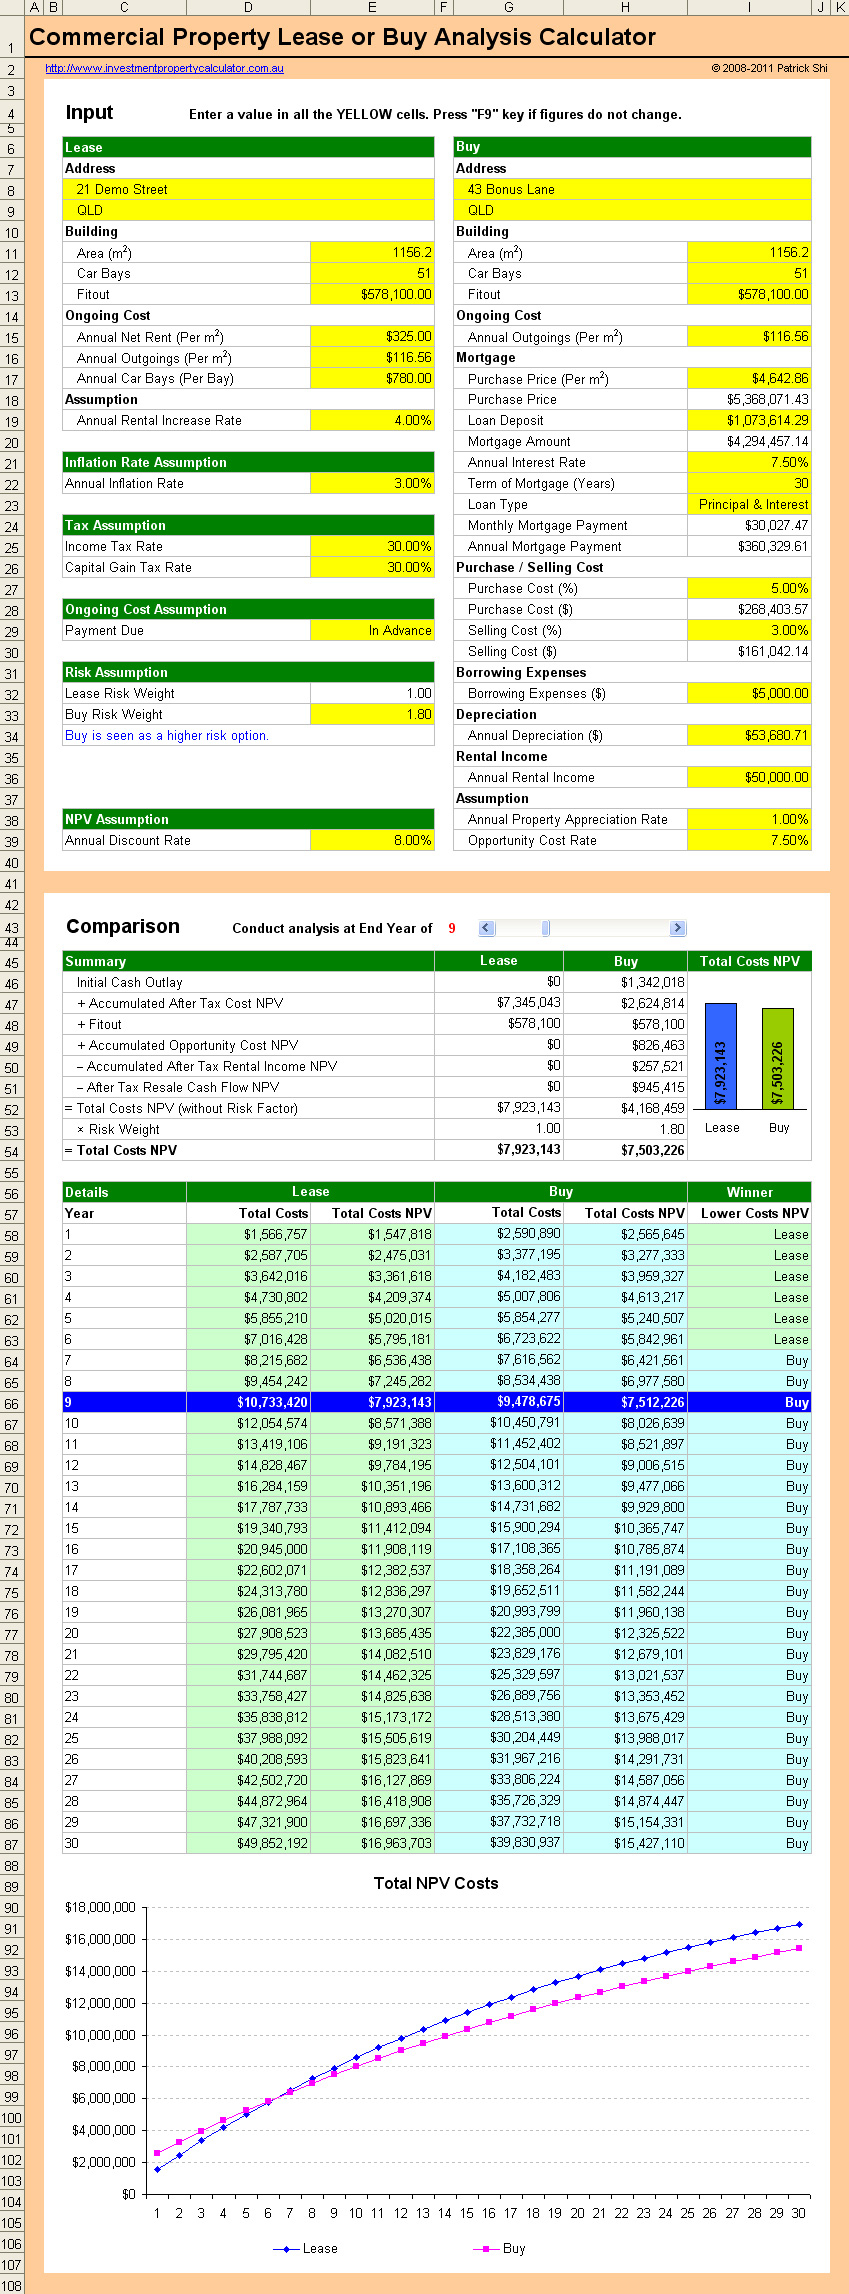 Real Estate Flipping Excel Spreadsheet With Free Rental Property Investment Analysis Calculator Excel